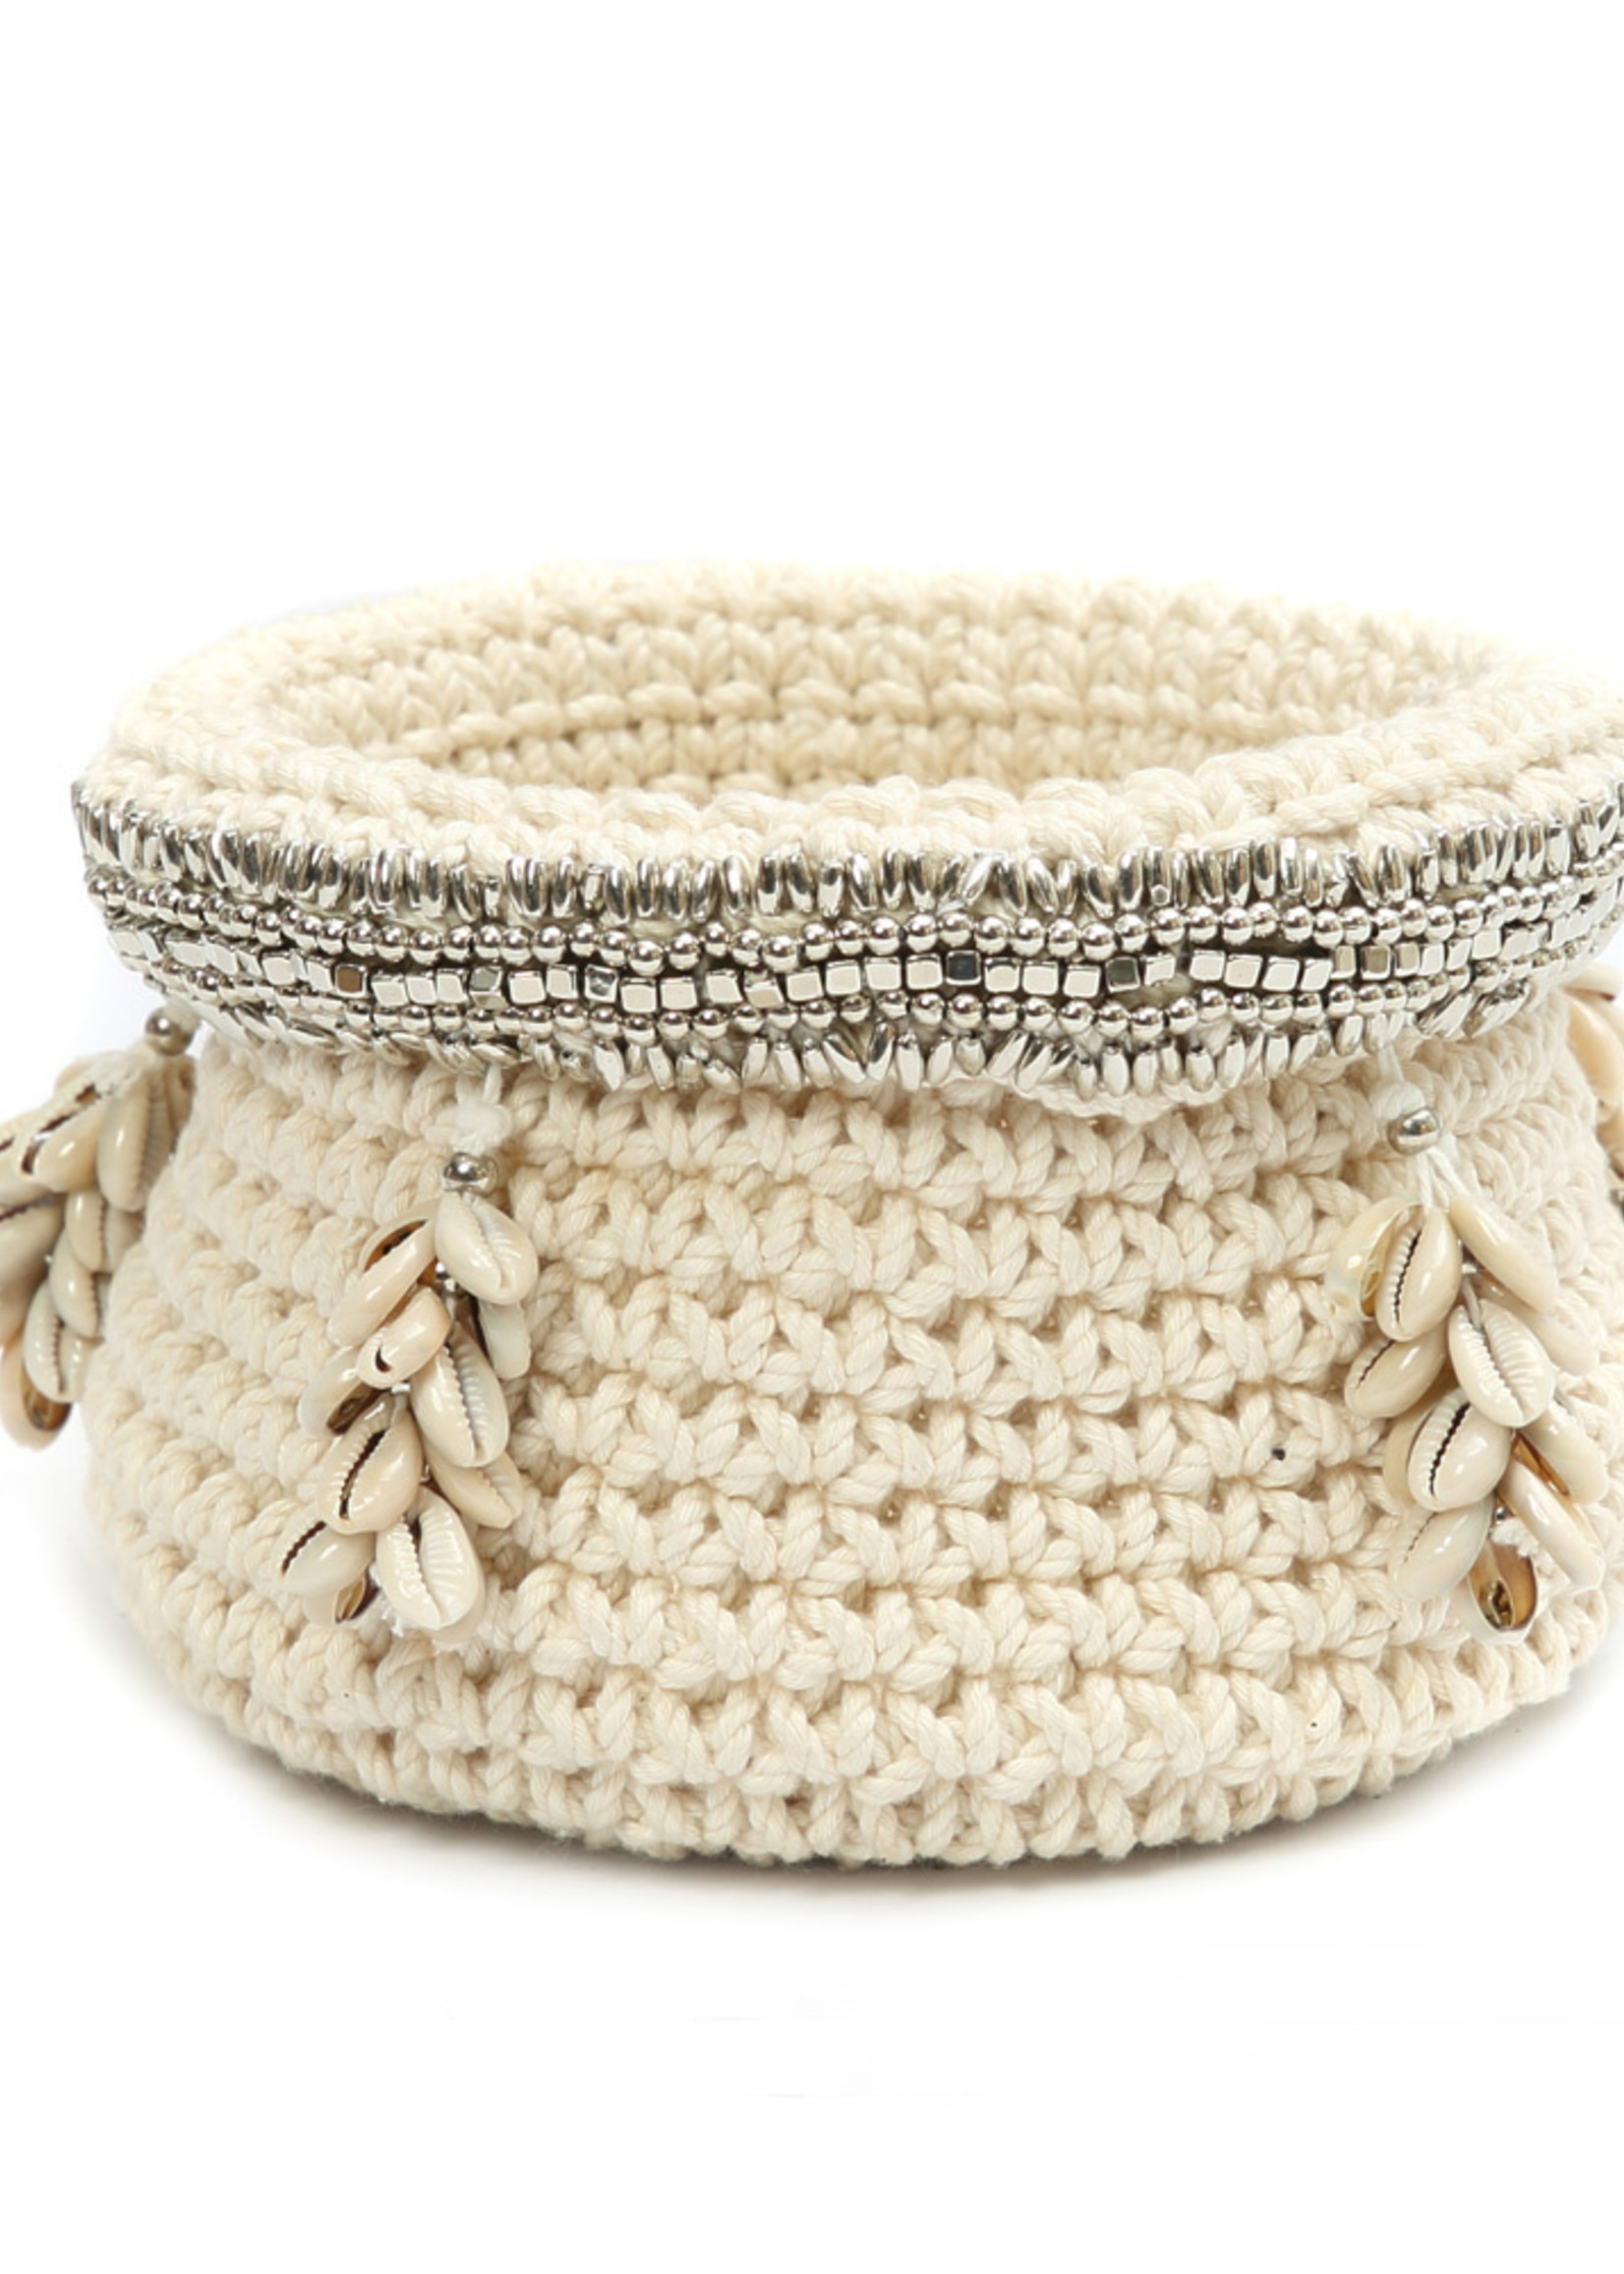 The Silver Beaded Cowrie Planter - Natural Silver - M